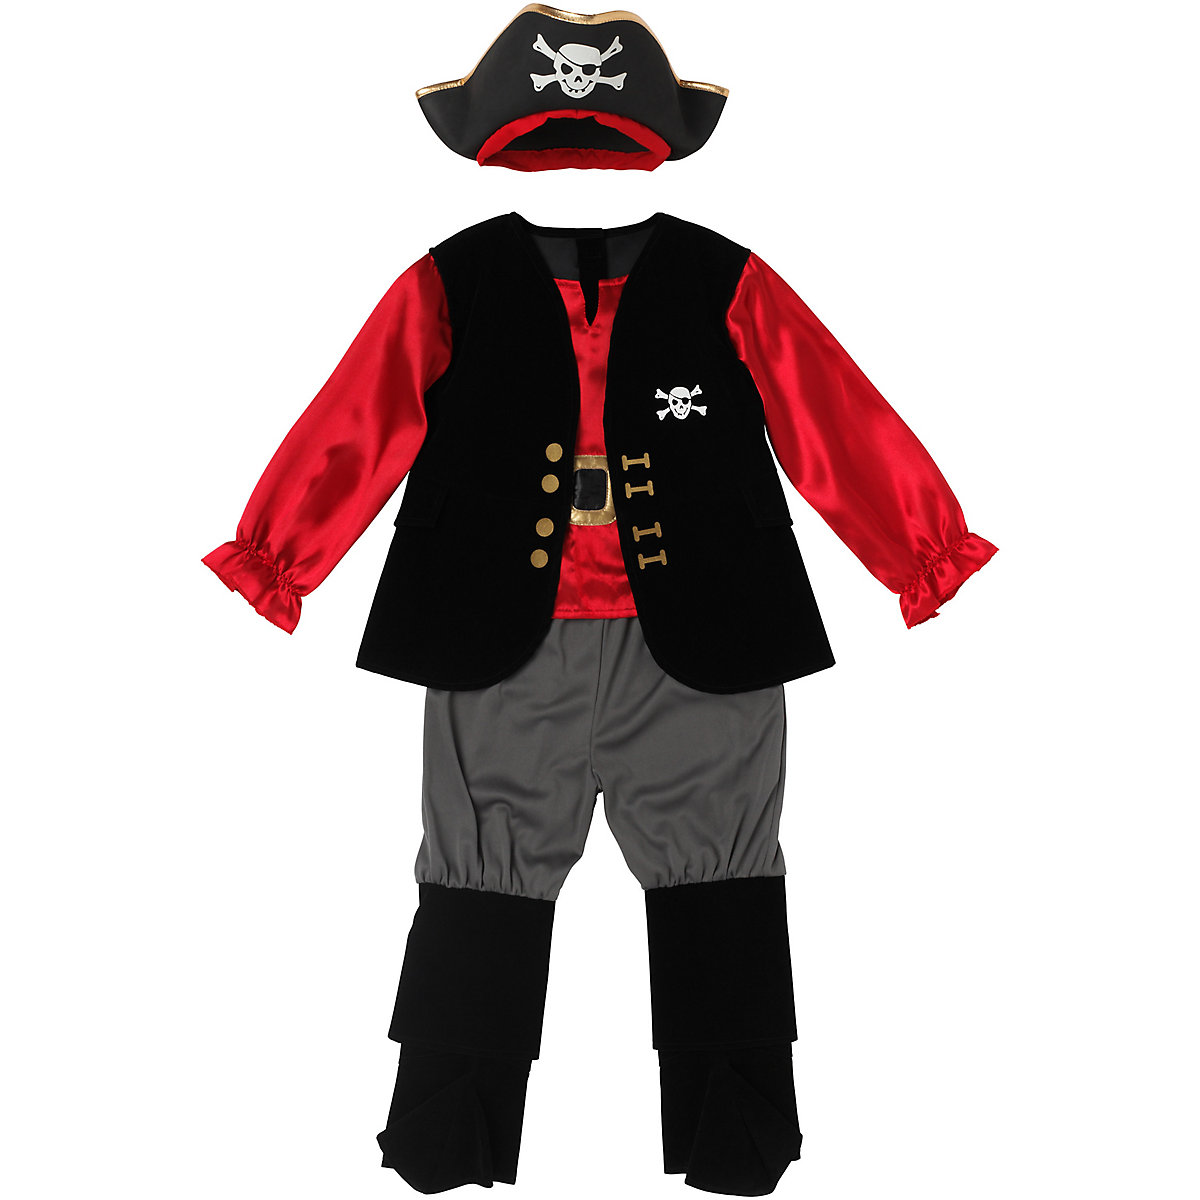 New ELC Boys and Girls Pirate Captain Outfit Toy From 3 years - Dressing Up Gifts